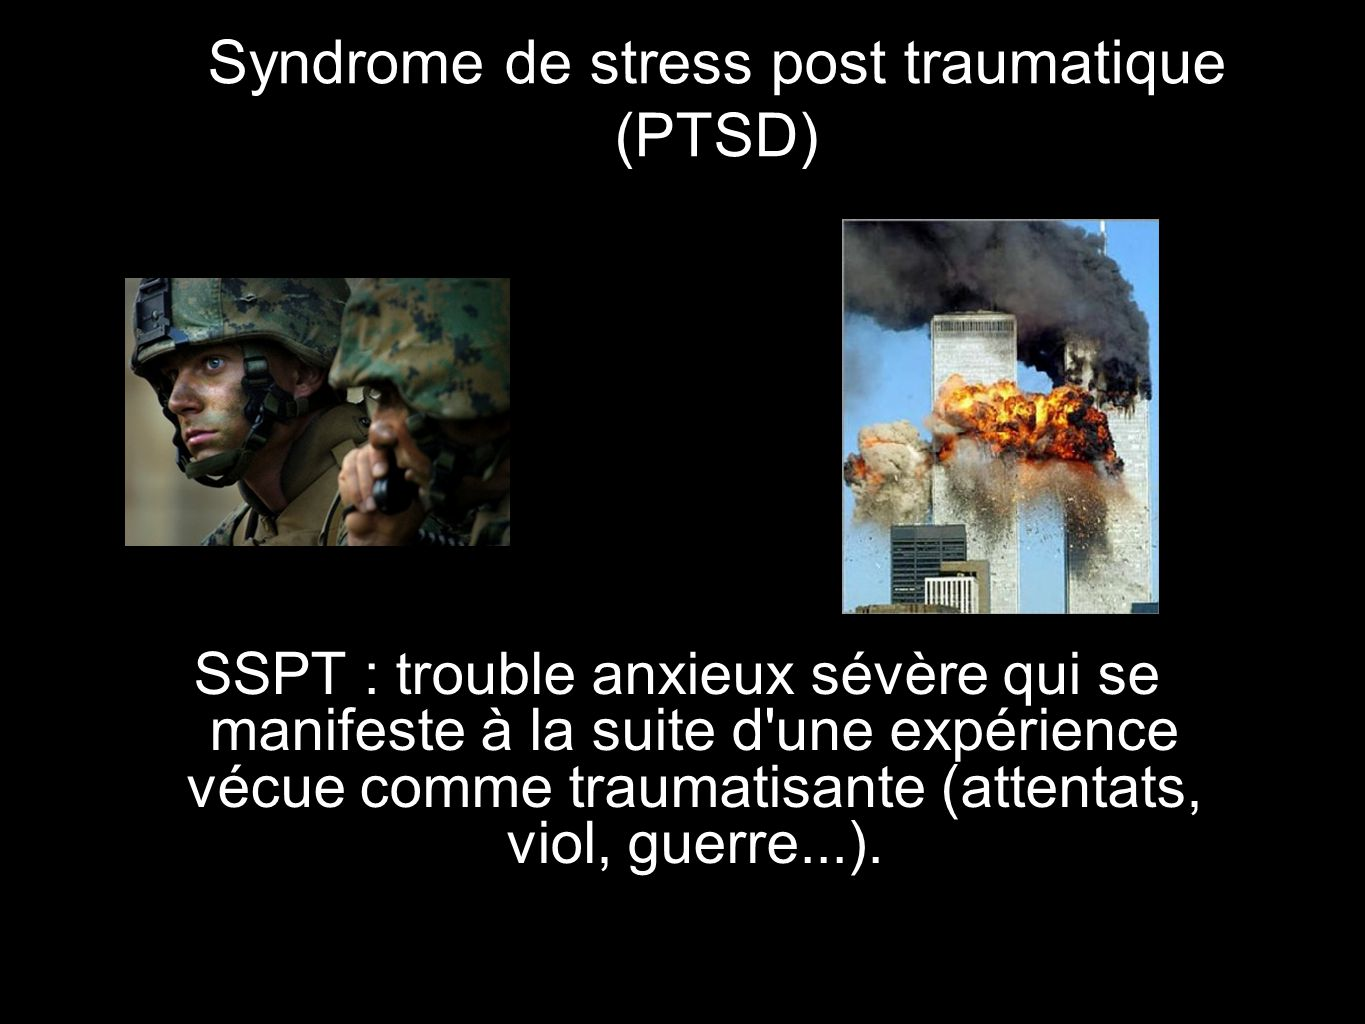 Syndrome de stress post traumatique (PTSD)